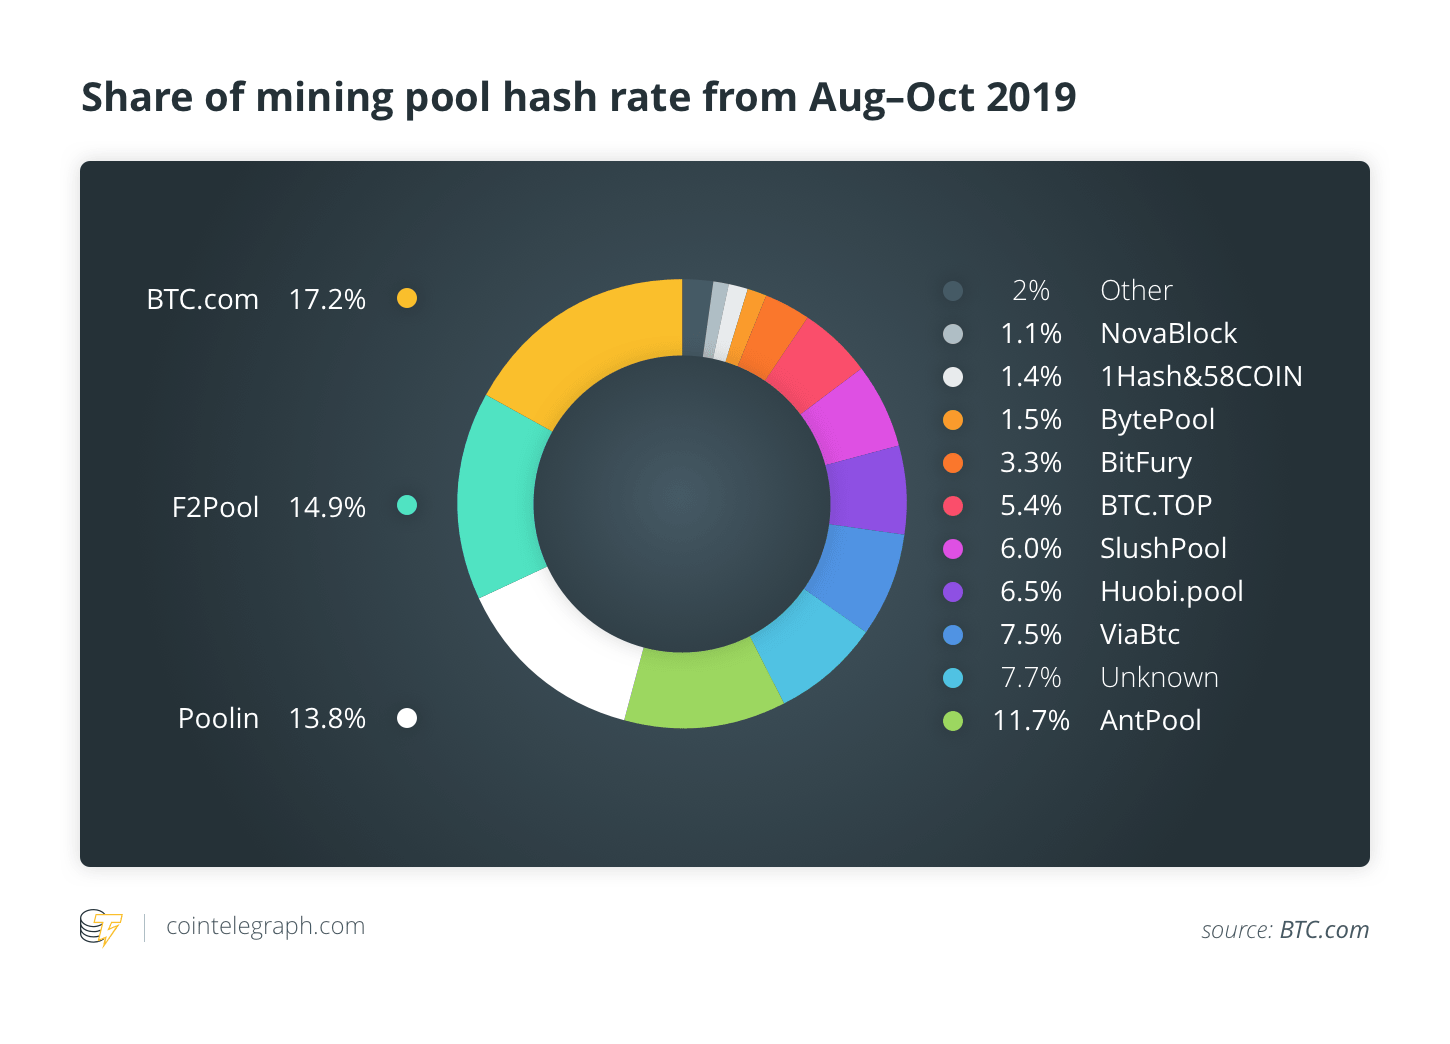 Global share of hashrate by mining pools for past 3 months